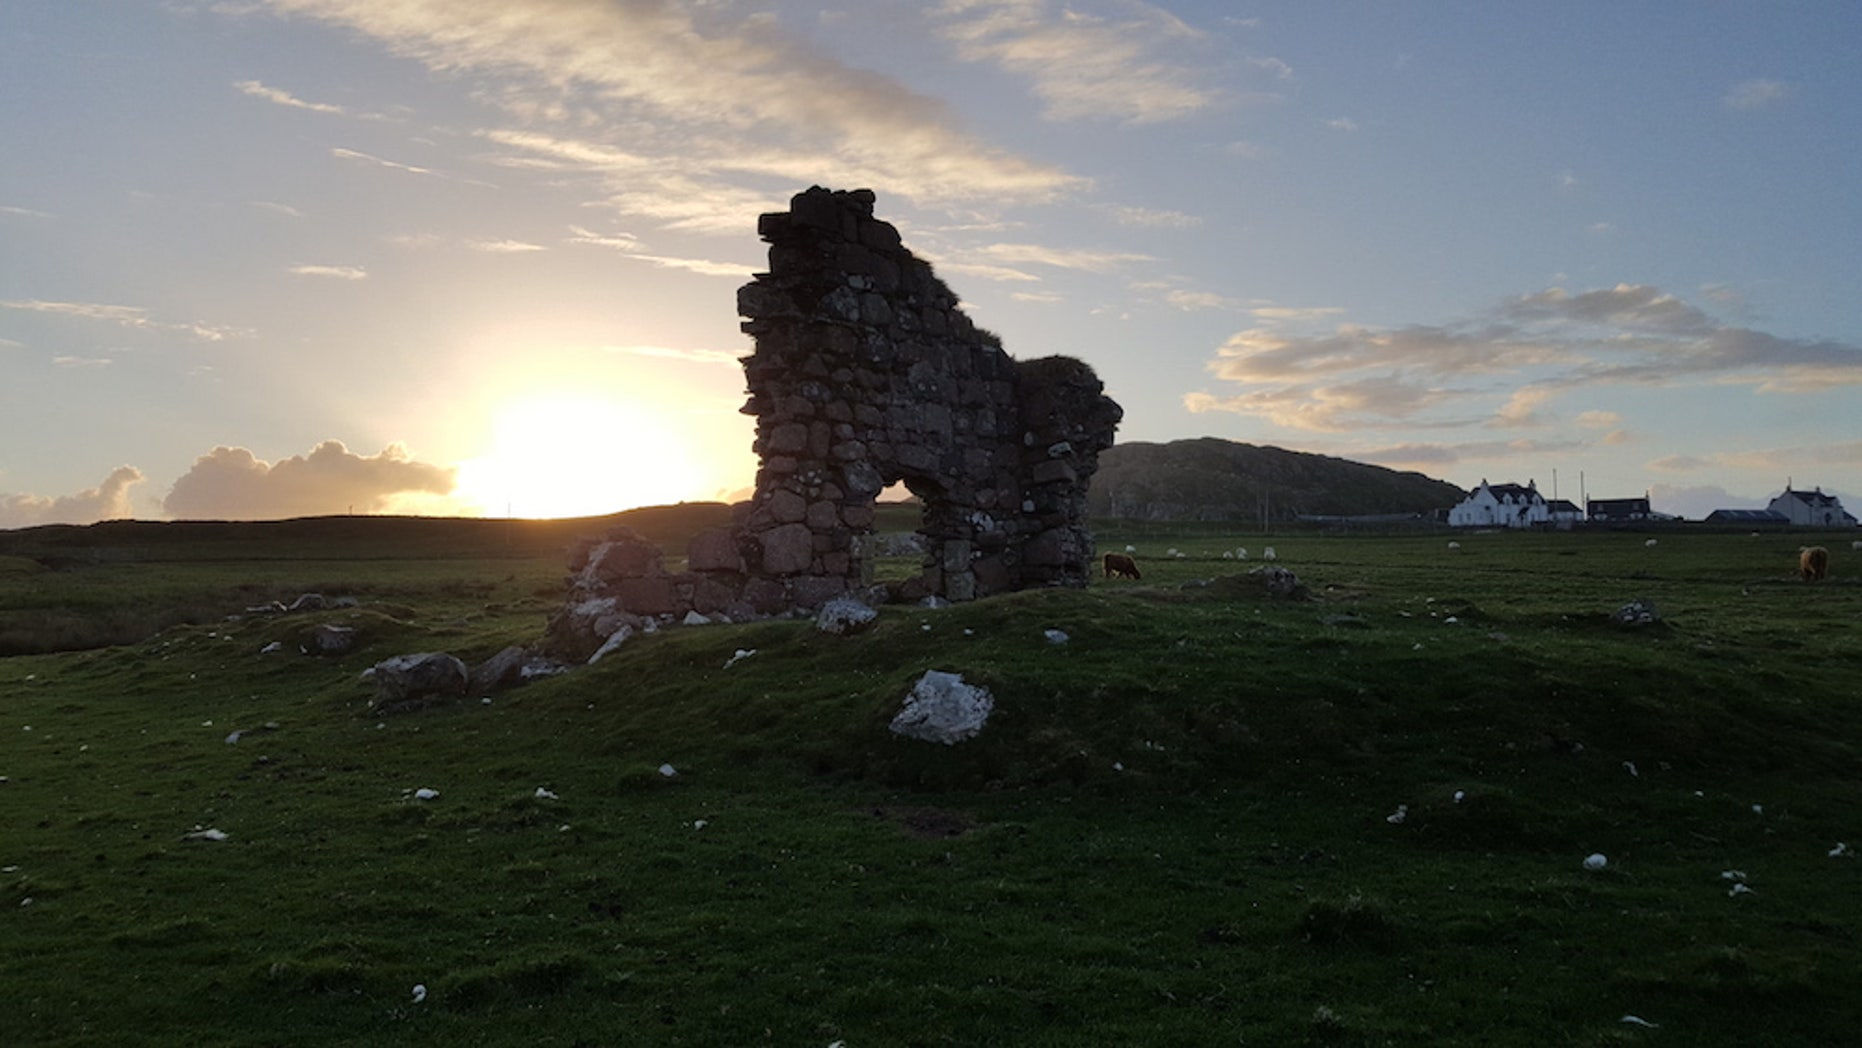 Archaeologists say remnants excavated from a small, rocky hill in Iona have been confirmed to be from the time period during which St. Columba lived.